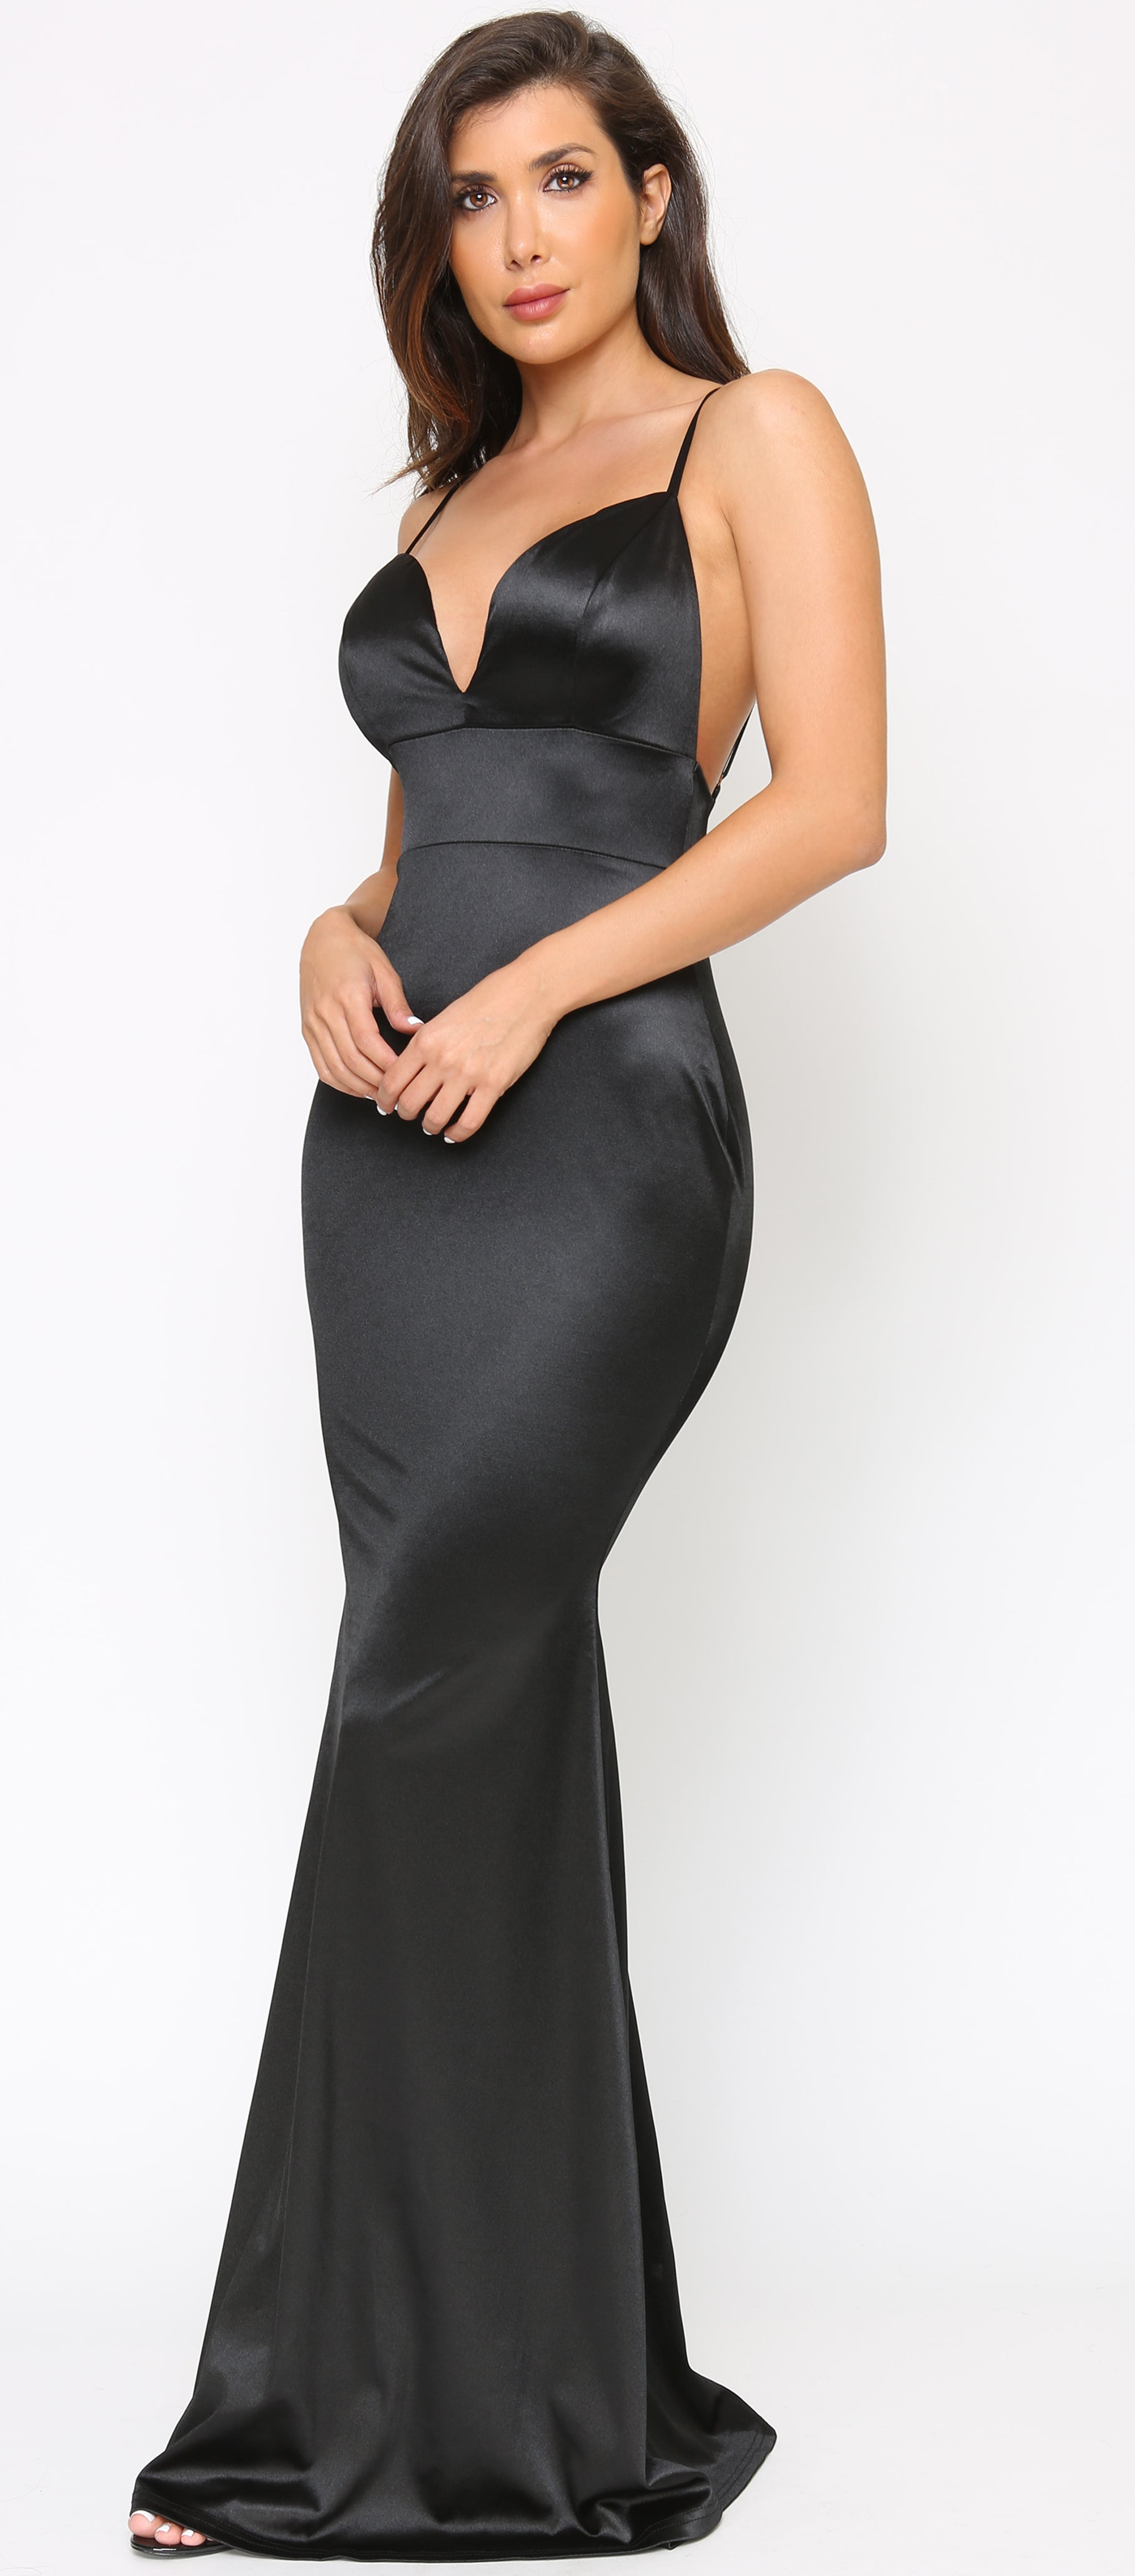 Keeva Black Backless Satin Maxi Dress